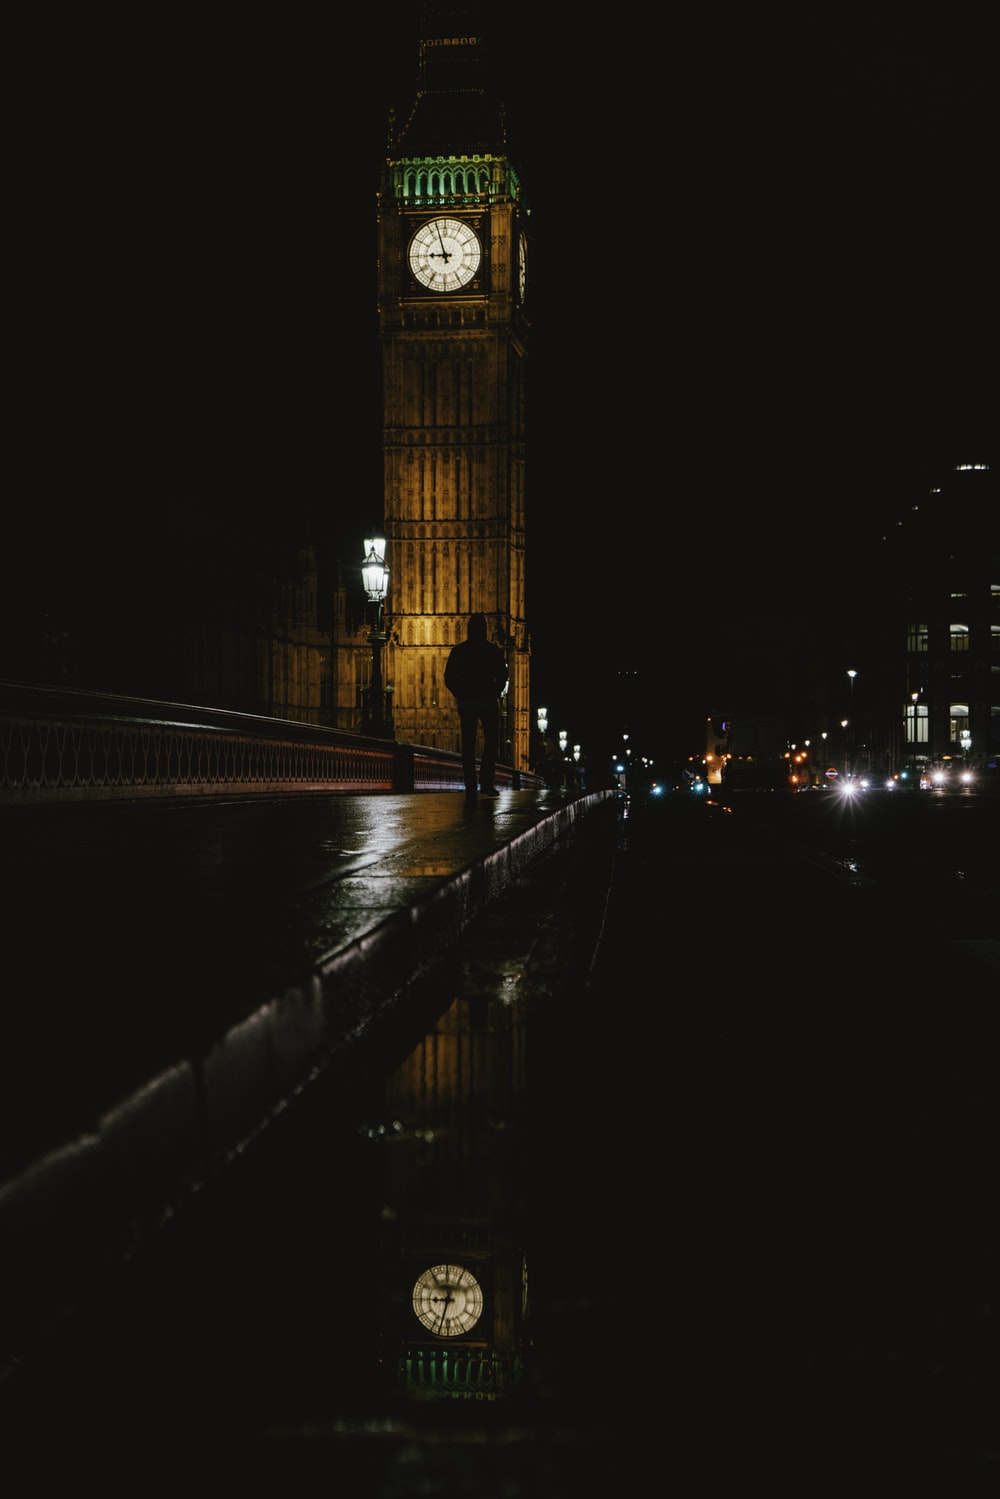 silhouette photo of man walking near Big Ben during nighttime